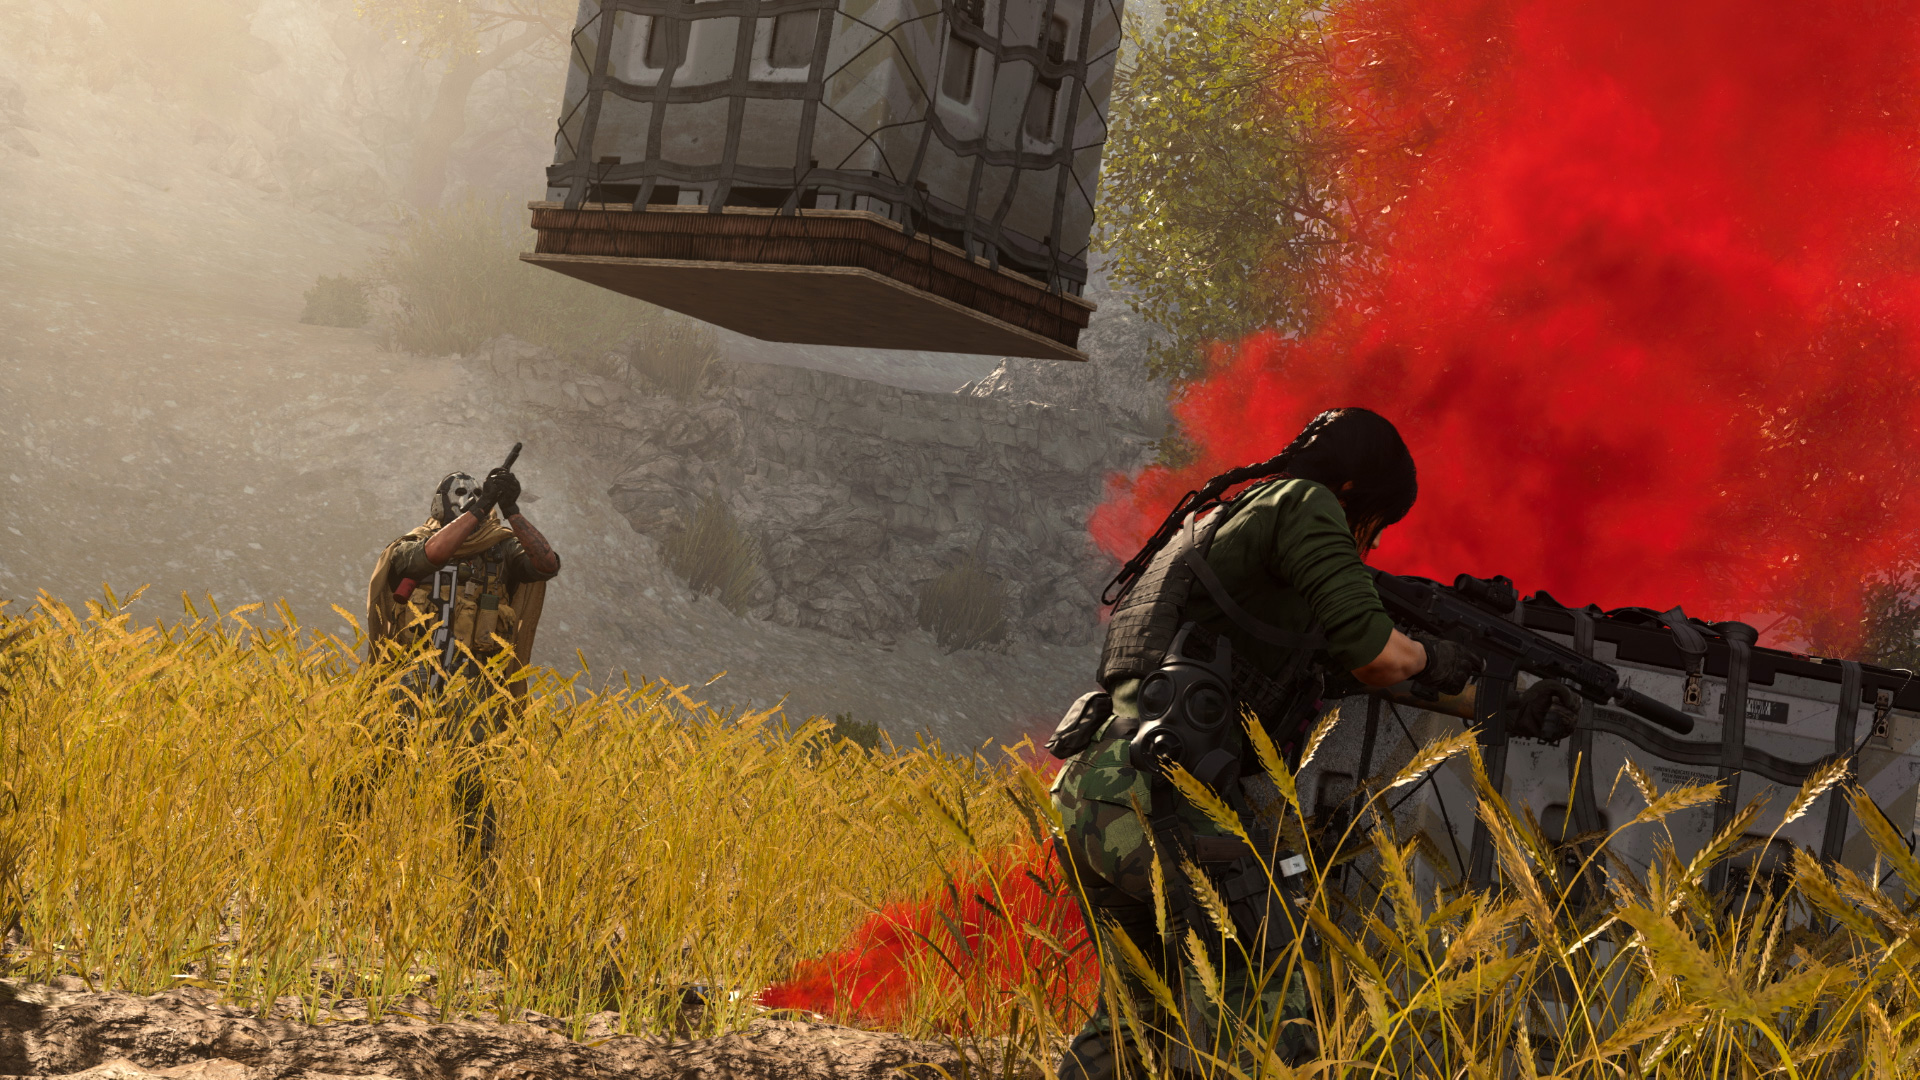 Two soldiers stand in a field, rifles raised, next to a rising plume of red smoke. A supply crate sits on the ground and another is being lowered to them below.